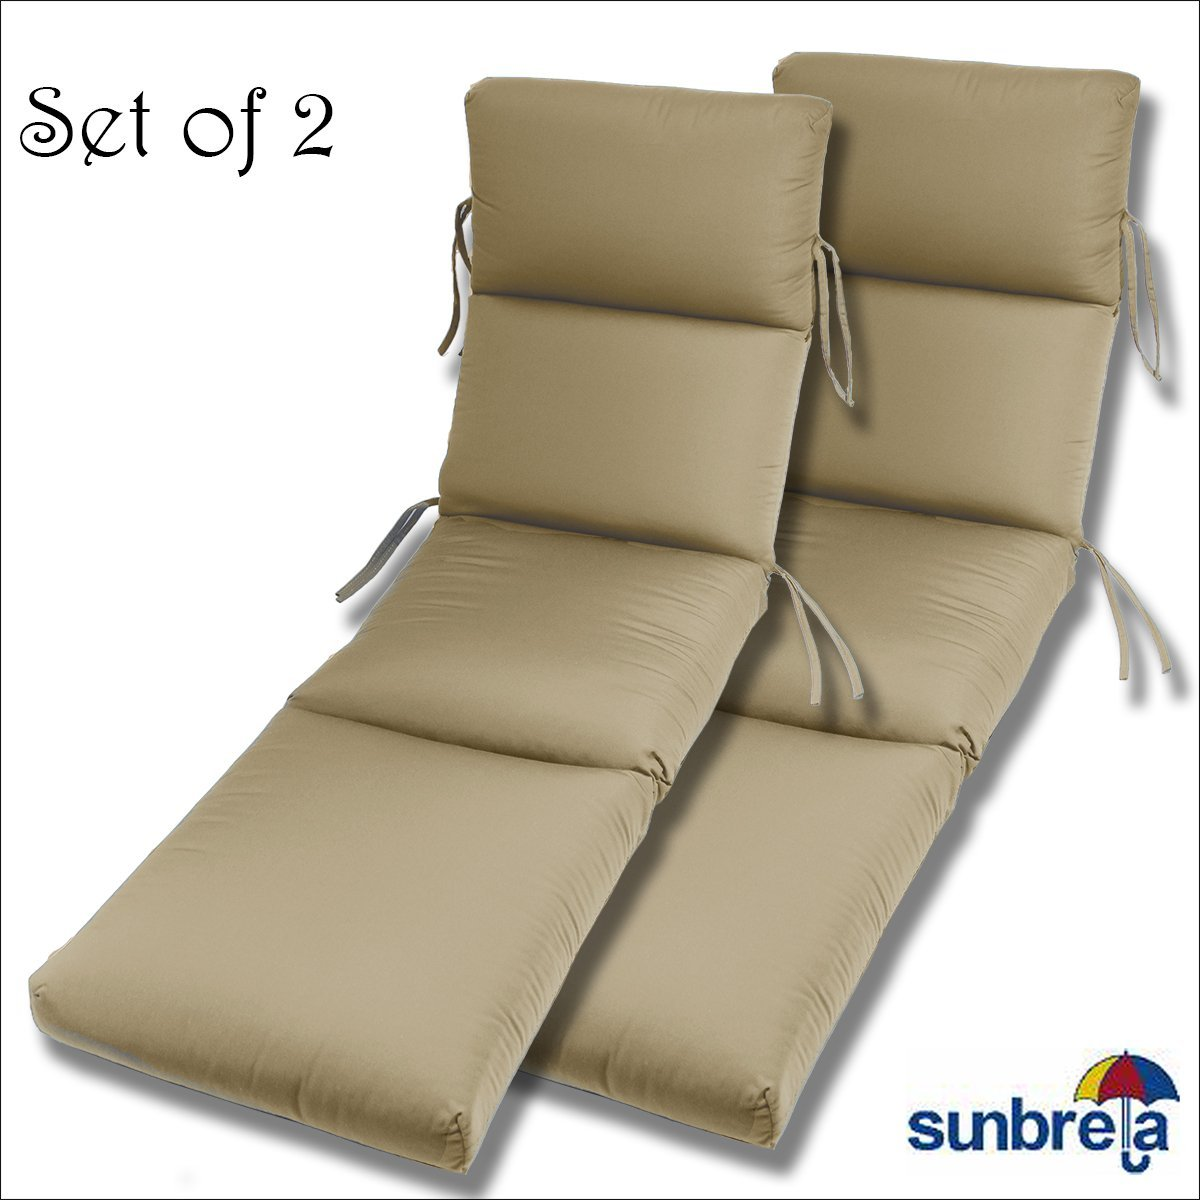 SET OF 2- 22x74x5 Sunbrella Indoor/Outdoor Fabrics in Antique Beige CHANNELED CHAISE CUSHION by Comfort Classics Inc.